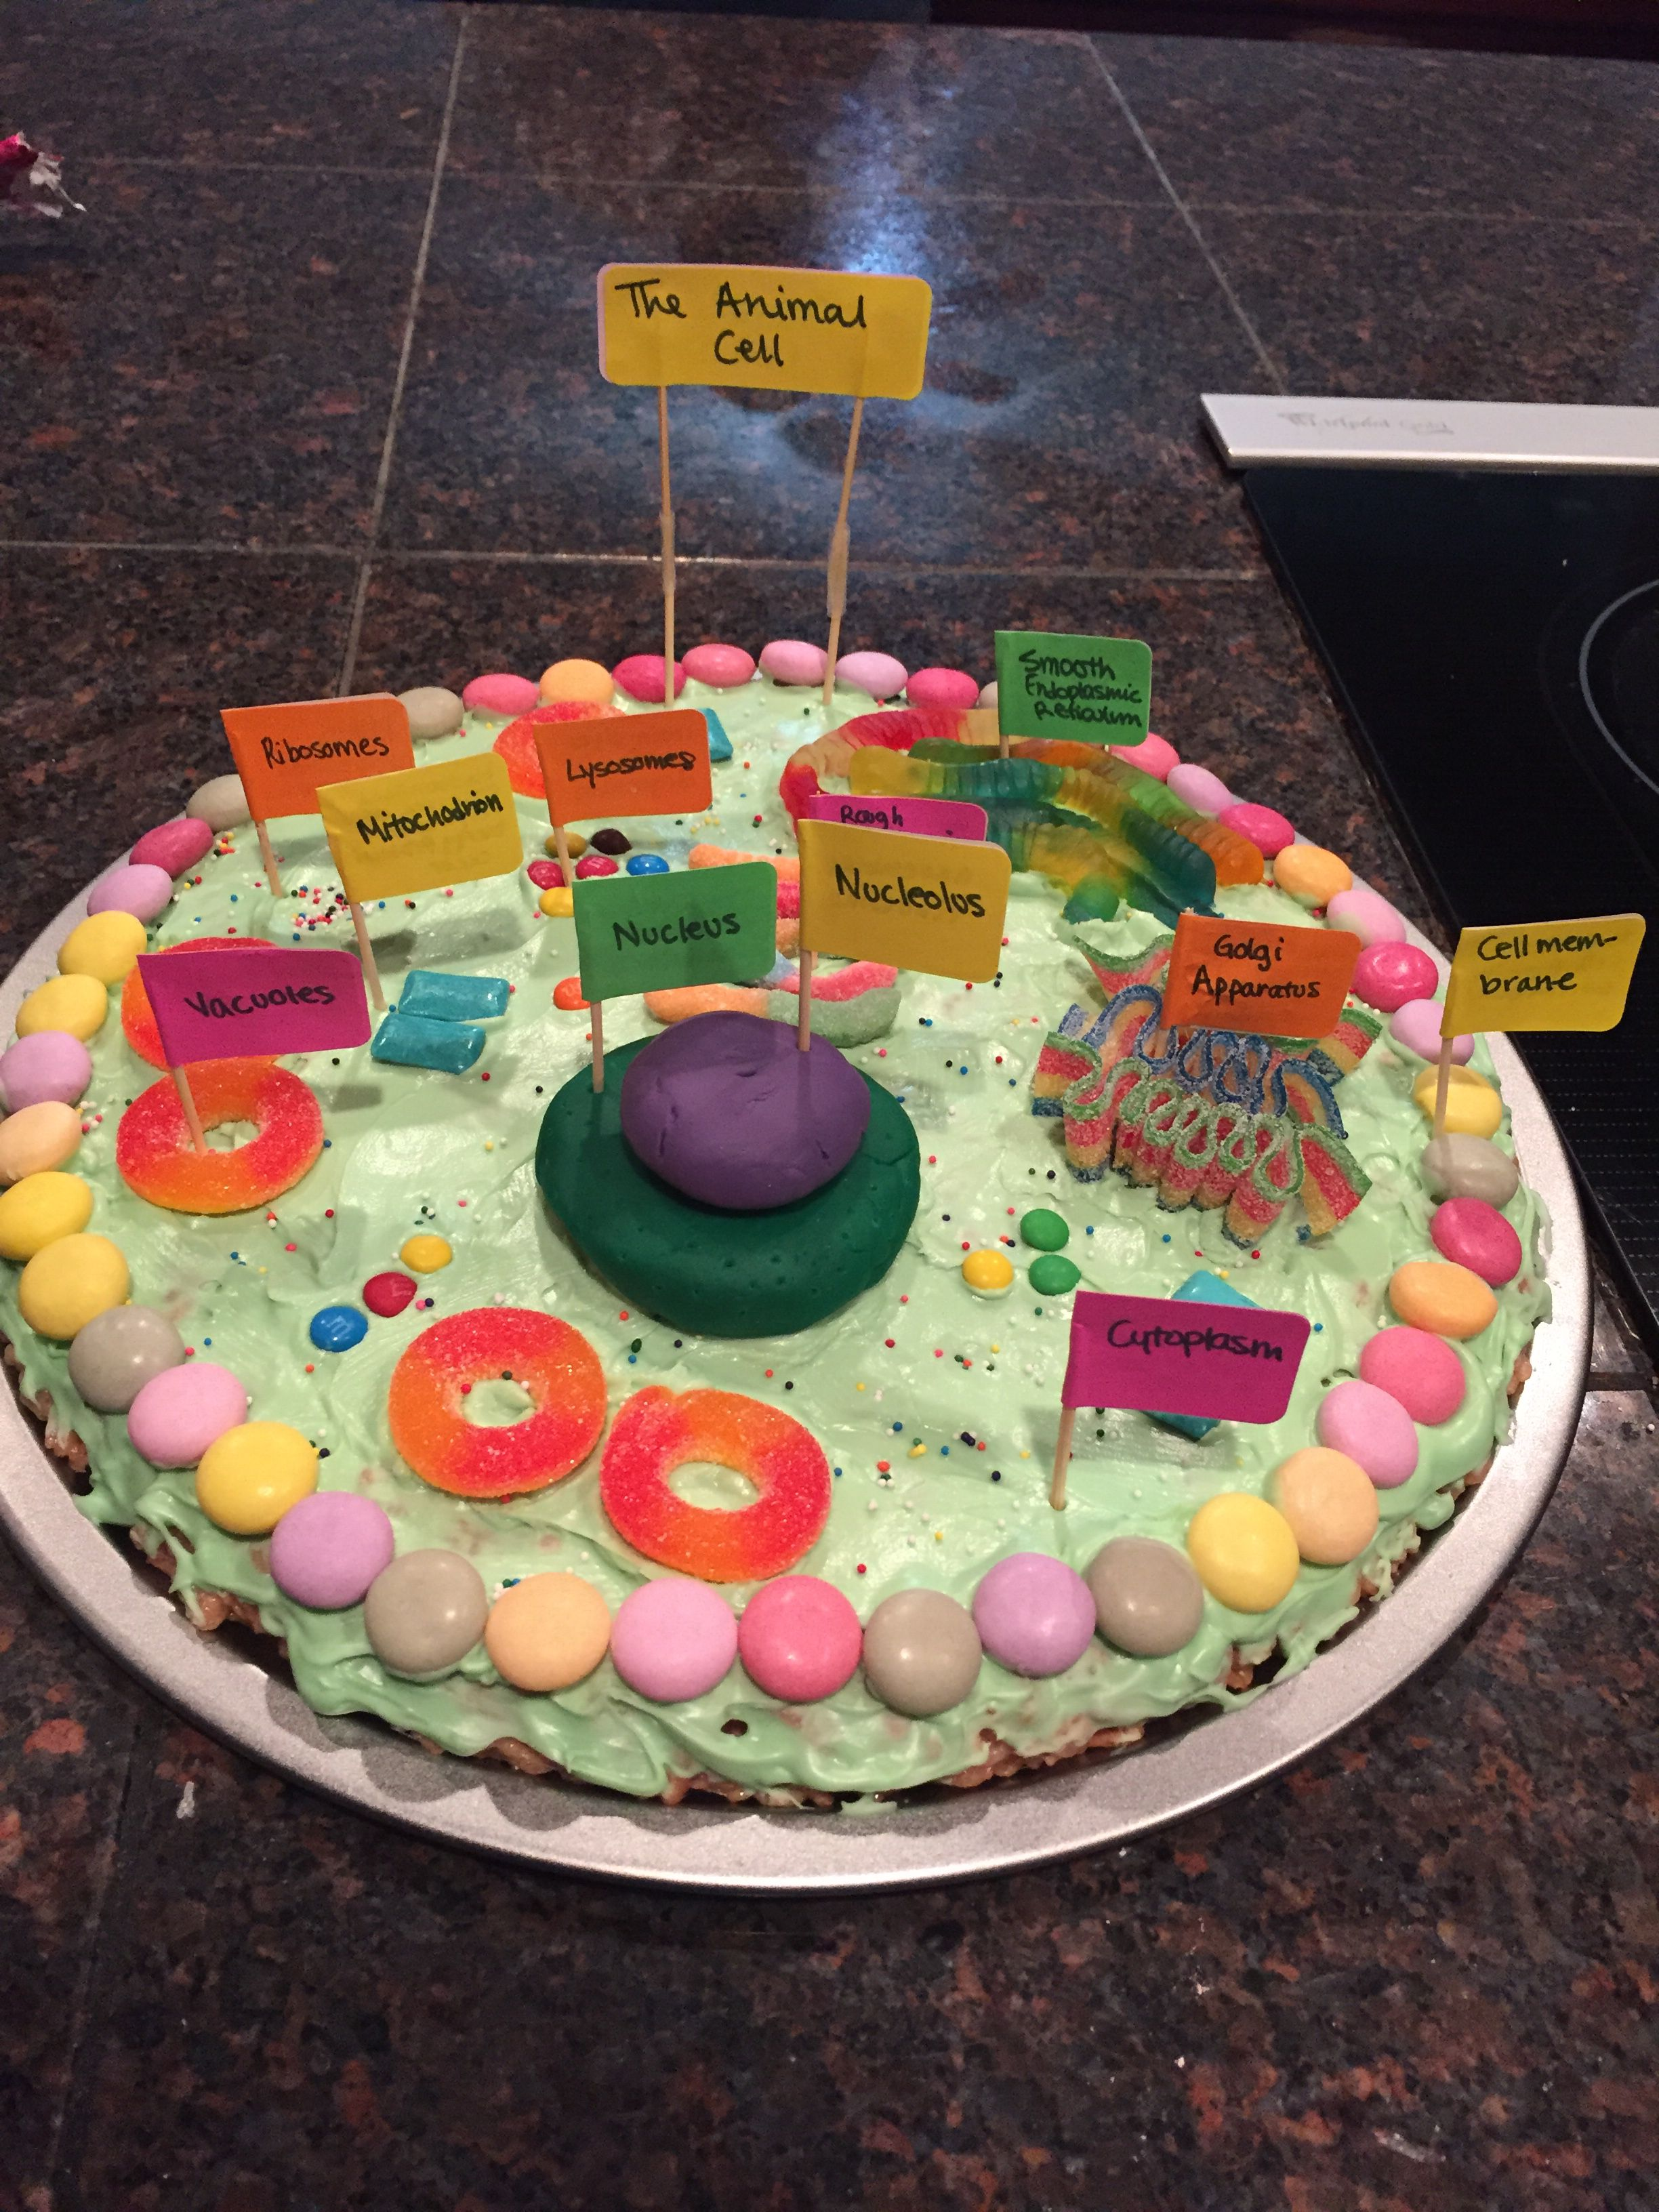 plant cell diagram project hydrosphere lithosphere atmosphere animal edible ideas pinterest